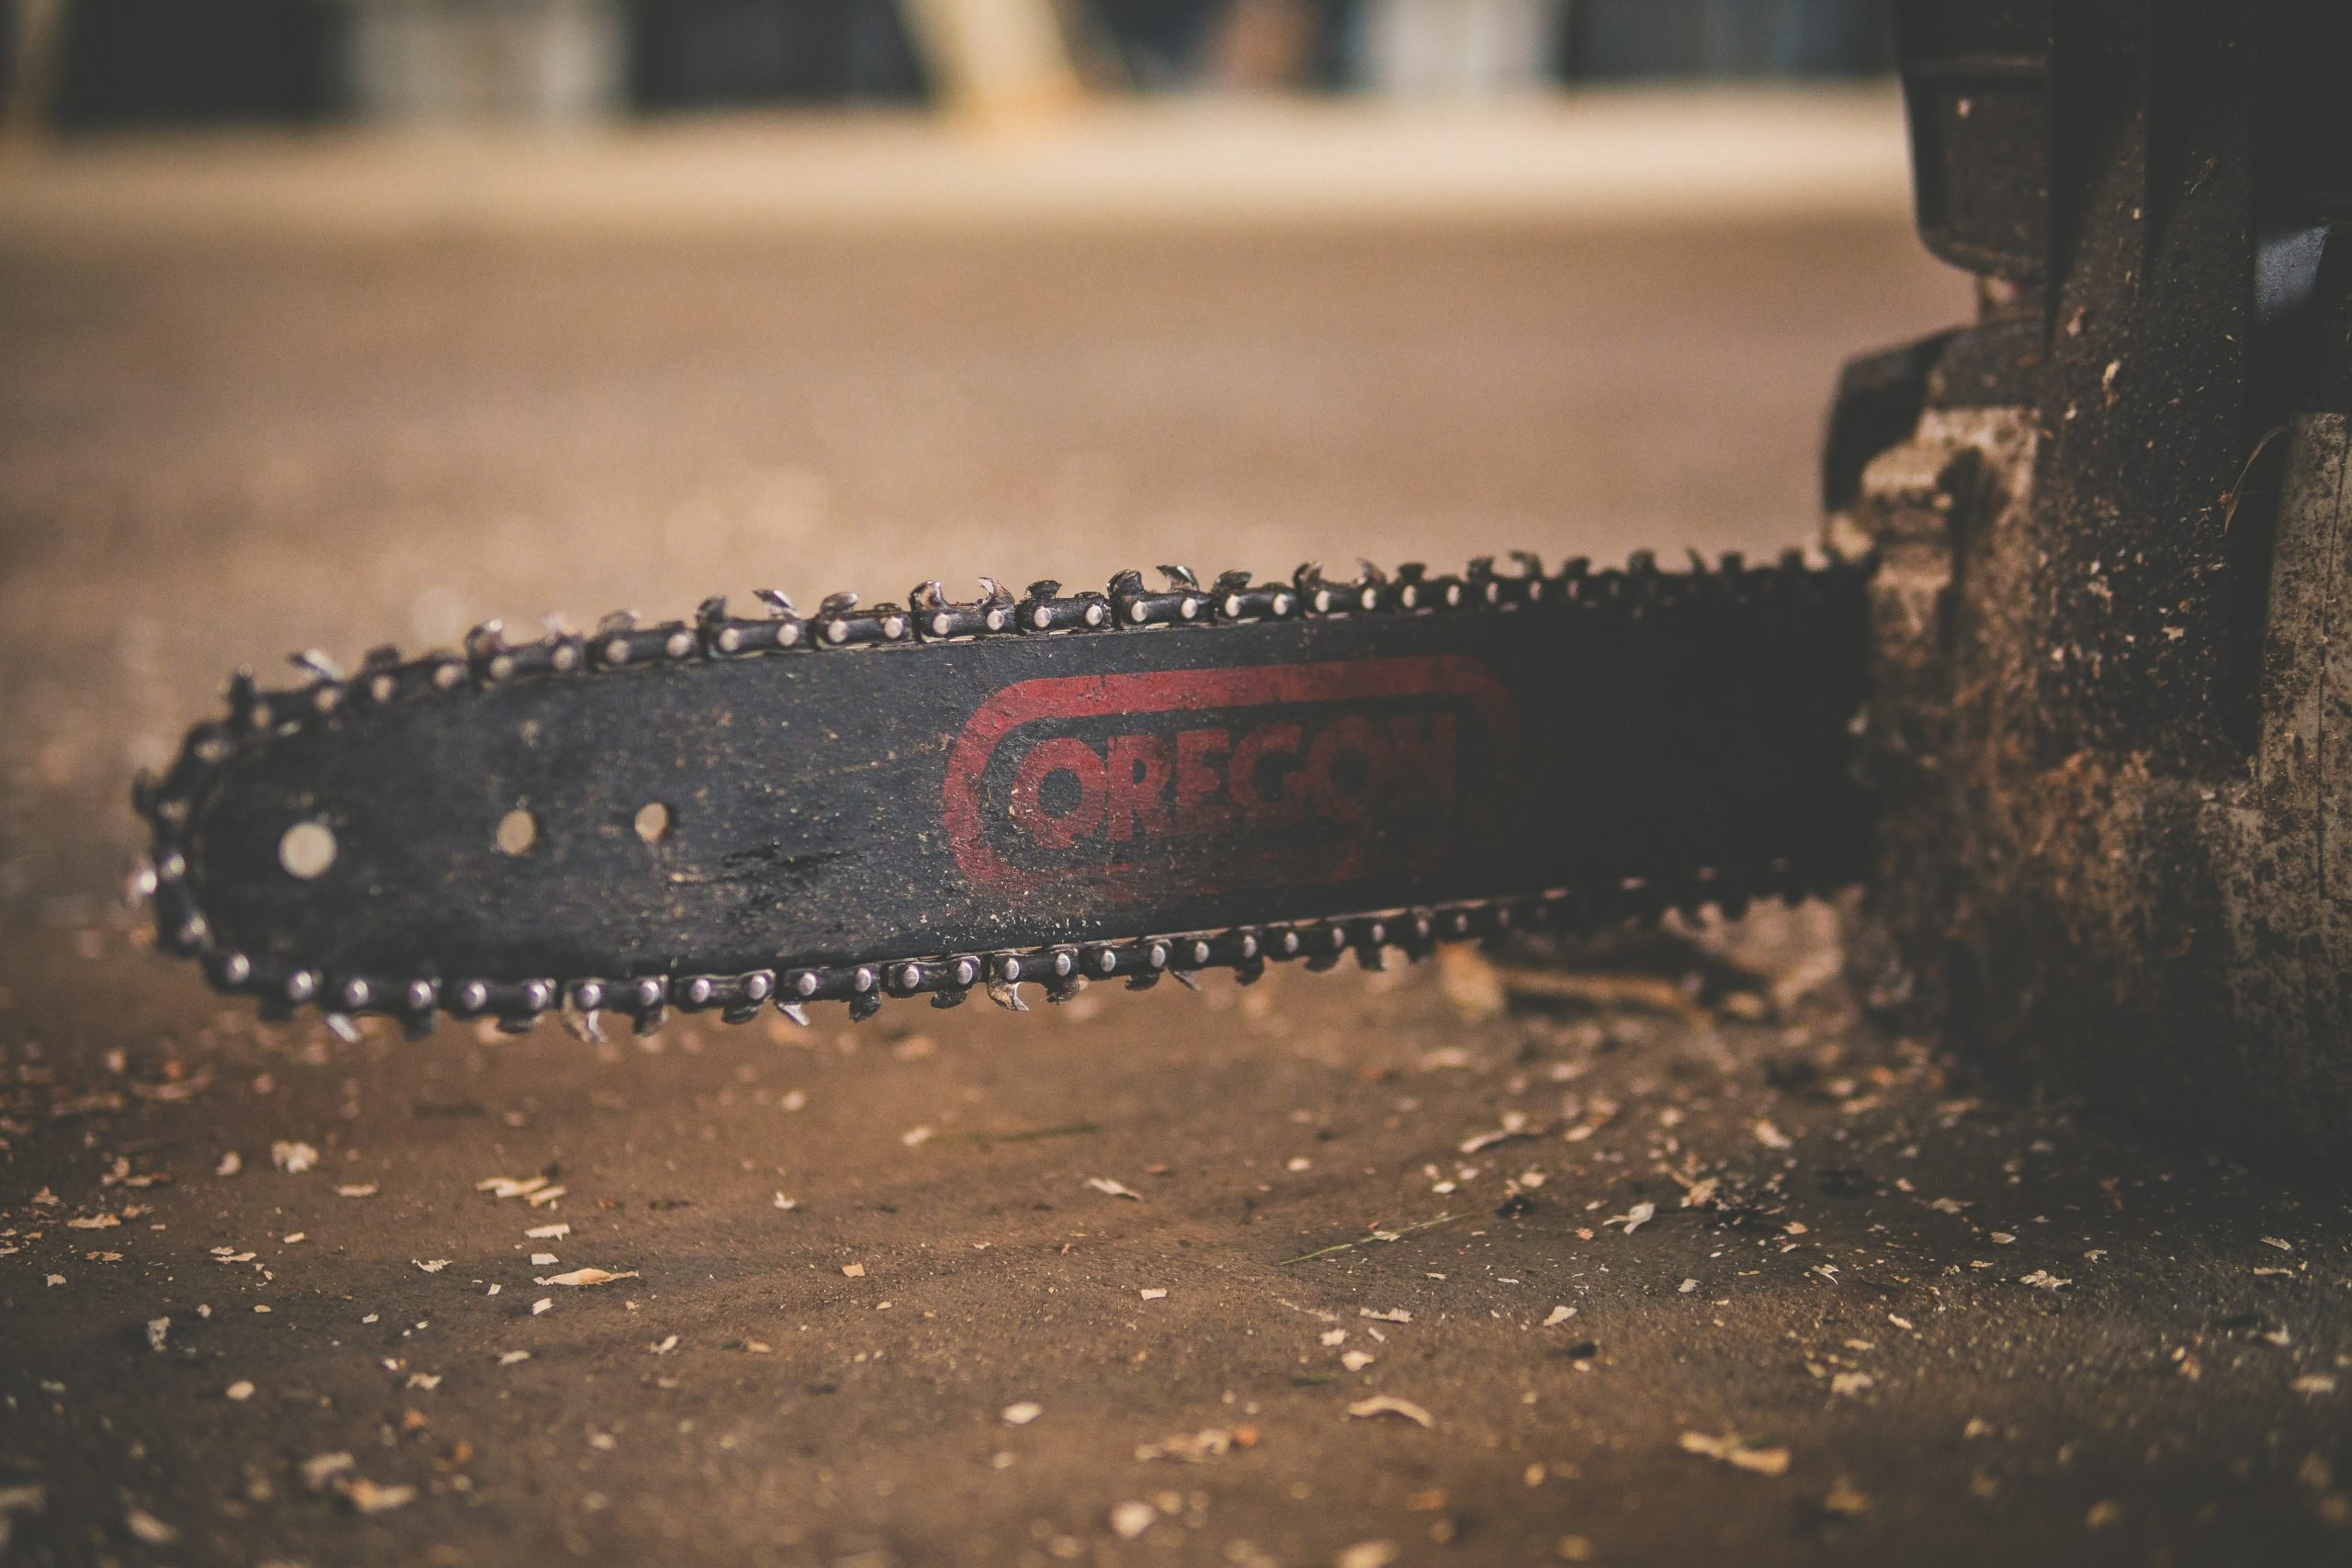 Chainsaws – 5 Fascinating and Stirring Facts You Haven't Heard About